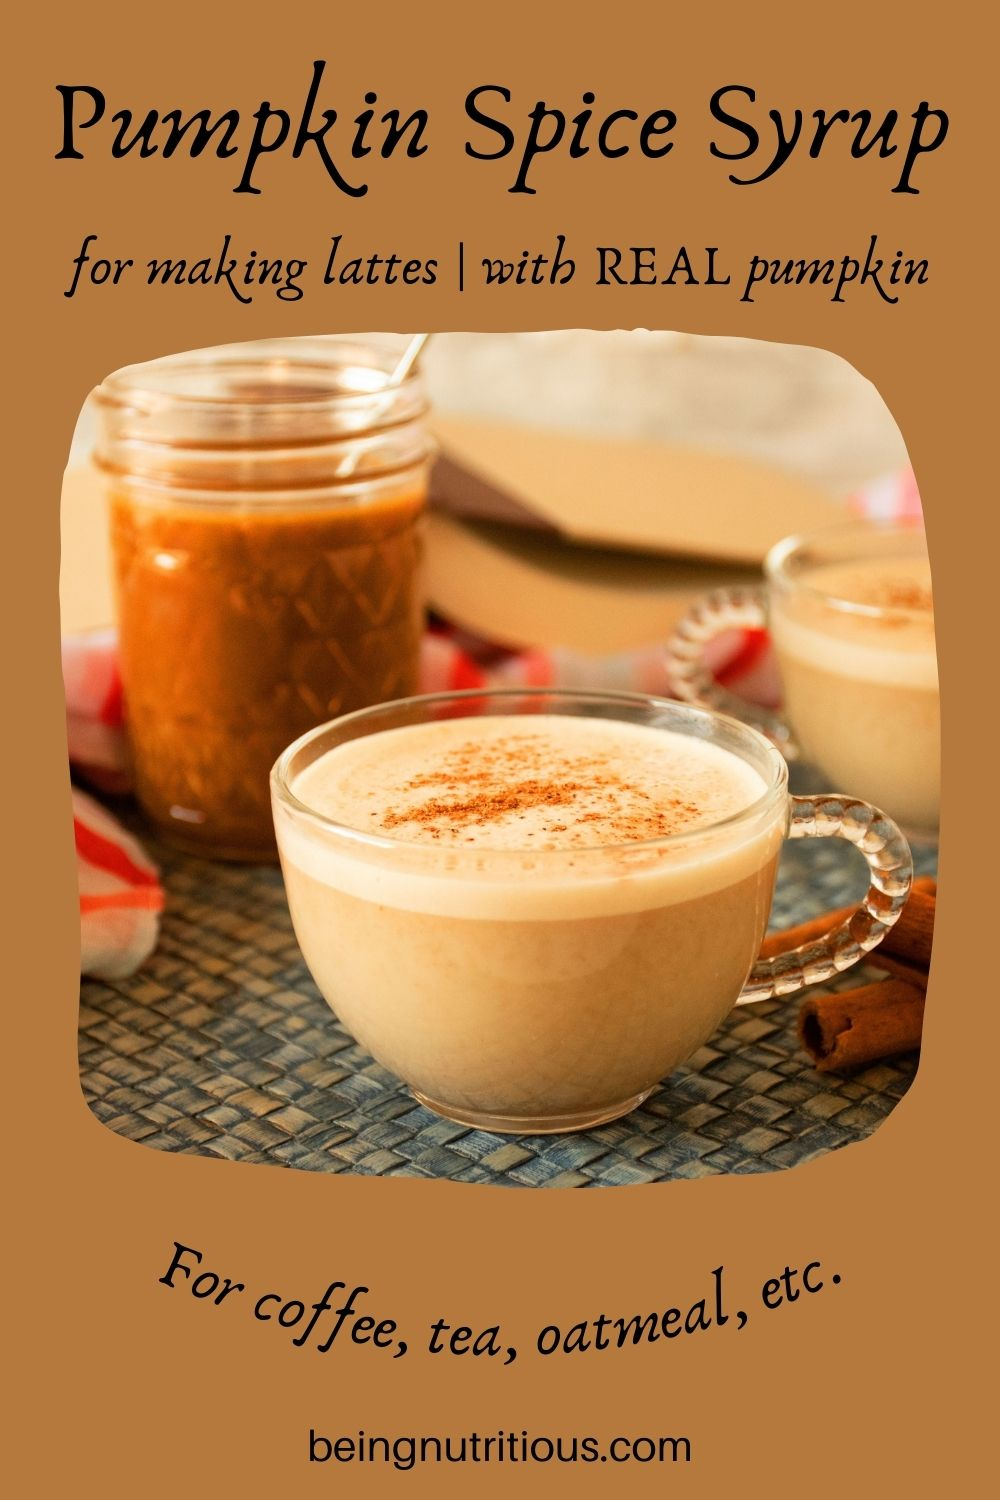 Small cup of a latte with a jar of pumpkin spice syrup in the background. Text around picture: Pumpkin Spice Syrup for making lattes; with REAL pumpkin. For coffee, tea, oatmeal, etc.